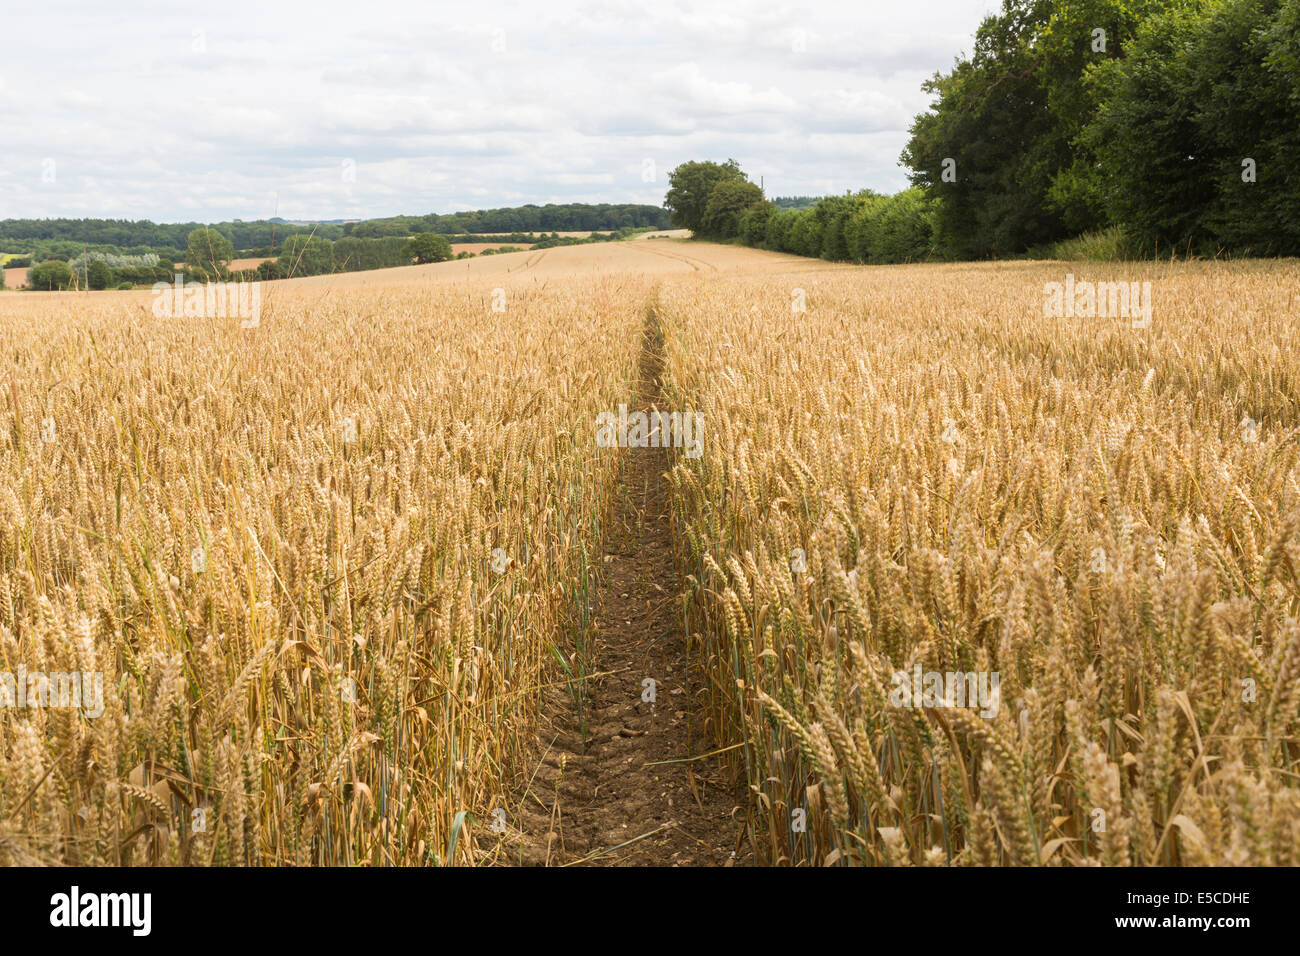 Tractor tracks in a field of golden, ripe wheat in summer awaiting harvest on a farm at Great Bedwyn, Wiltshire - Stock Image